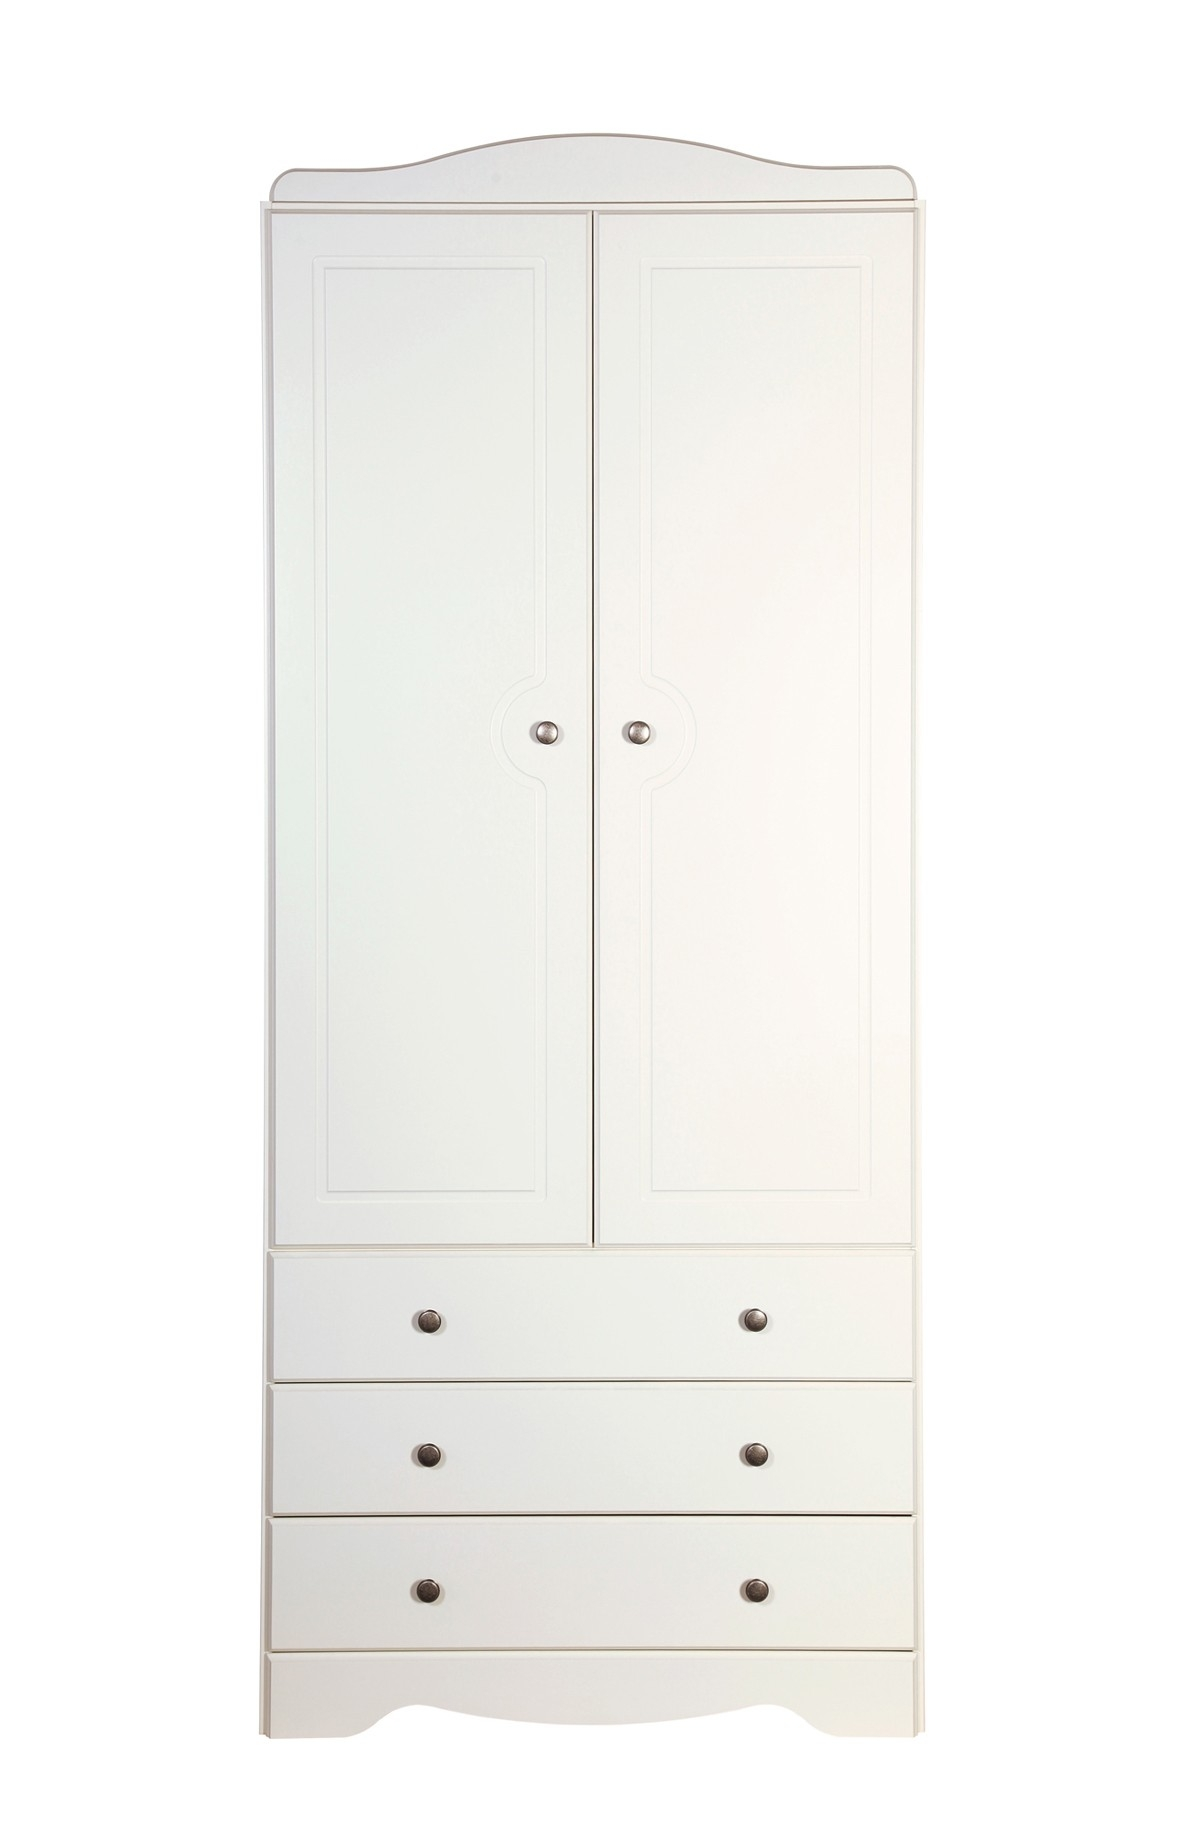 Milford 2 Door 3 Drawer Wardrobe White From The Original Factory Shop With Regard To 3 Door White Wardrobes (Image 13 of 25)